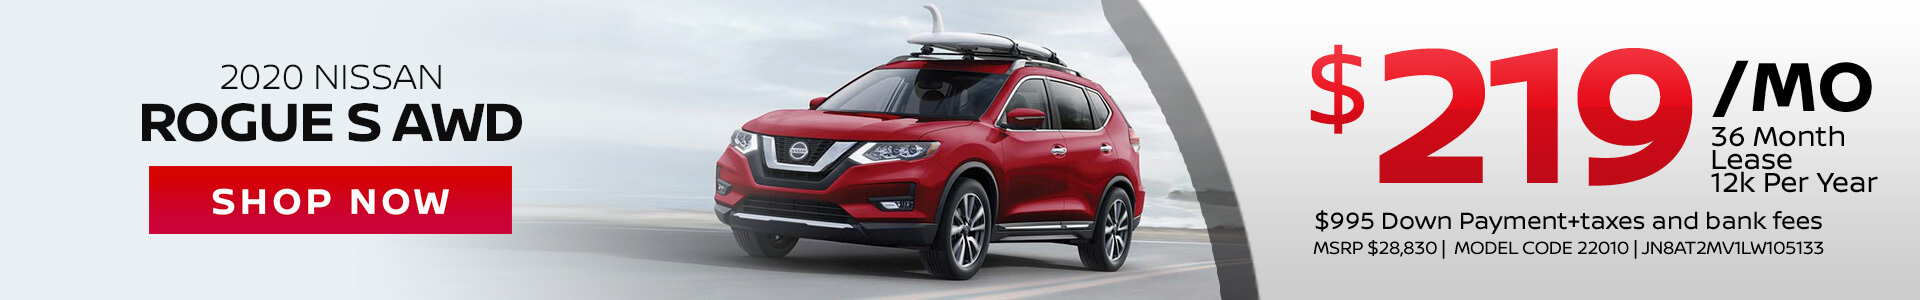 Nissan Rogue $219 Lease